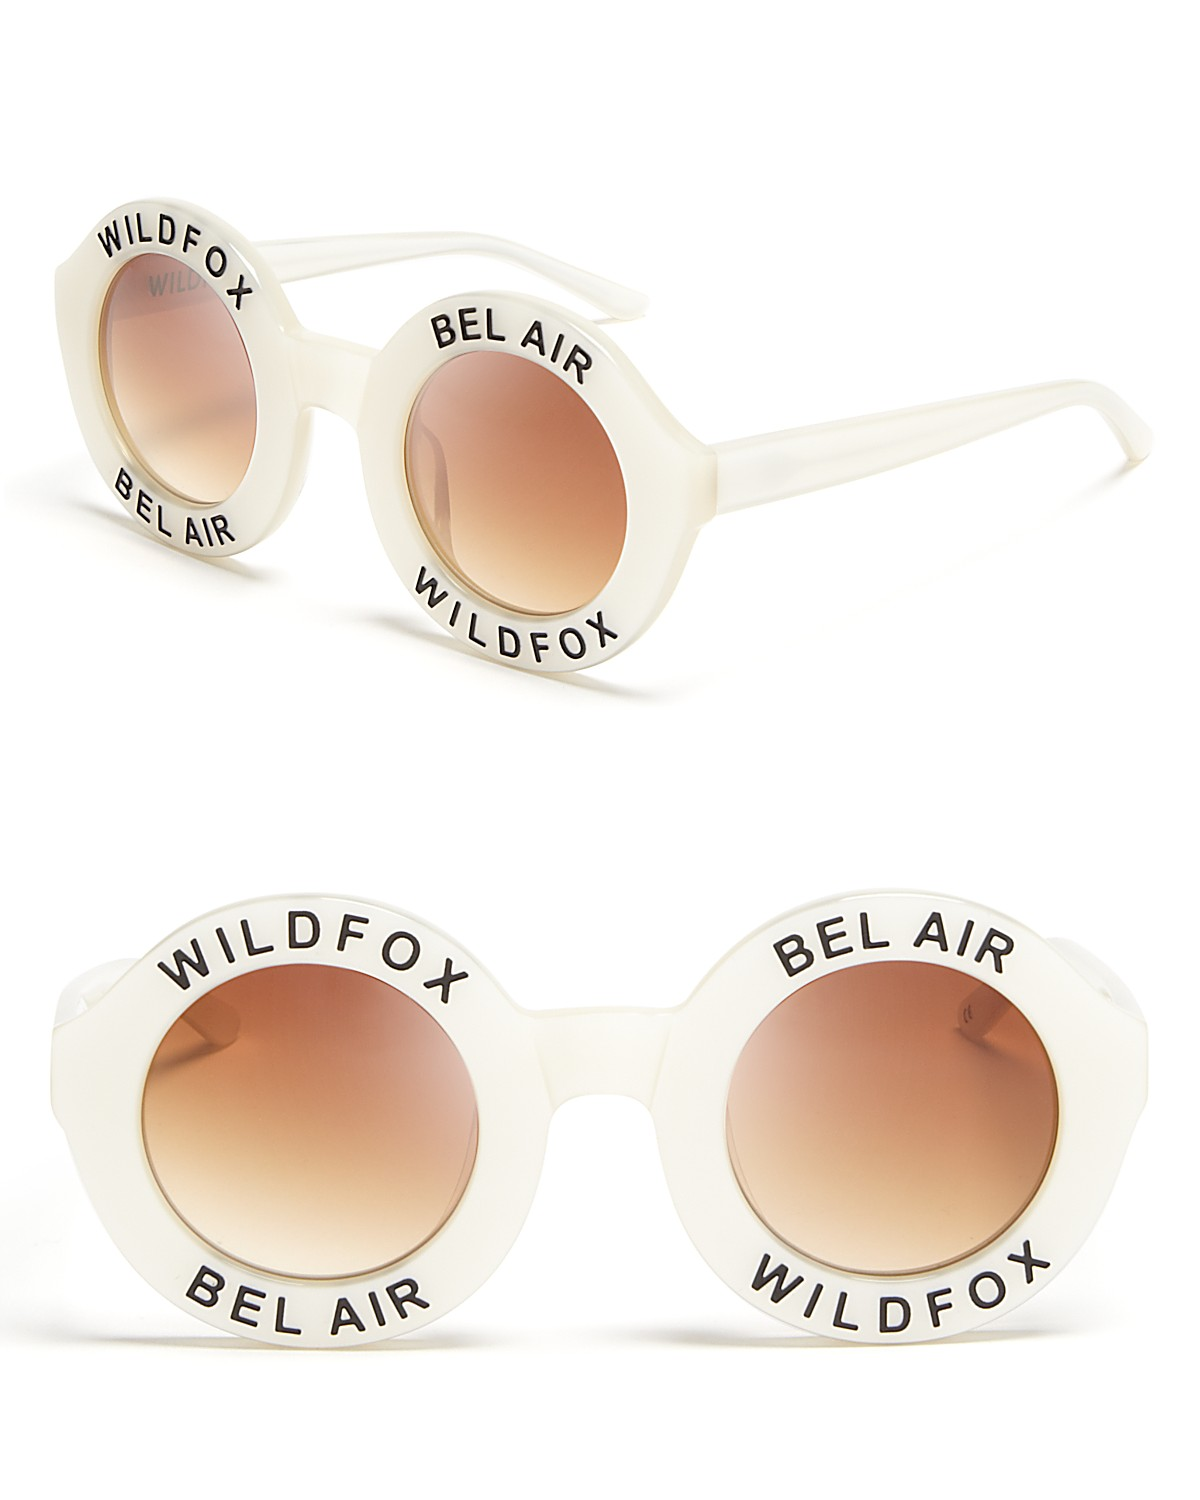 WILDFOX Sunglasses - Bel Air | Bloomingdale's